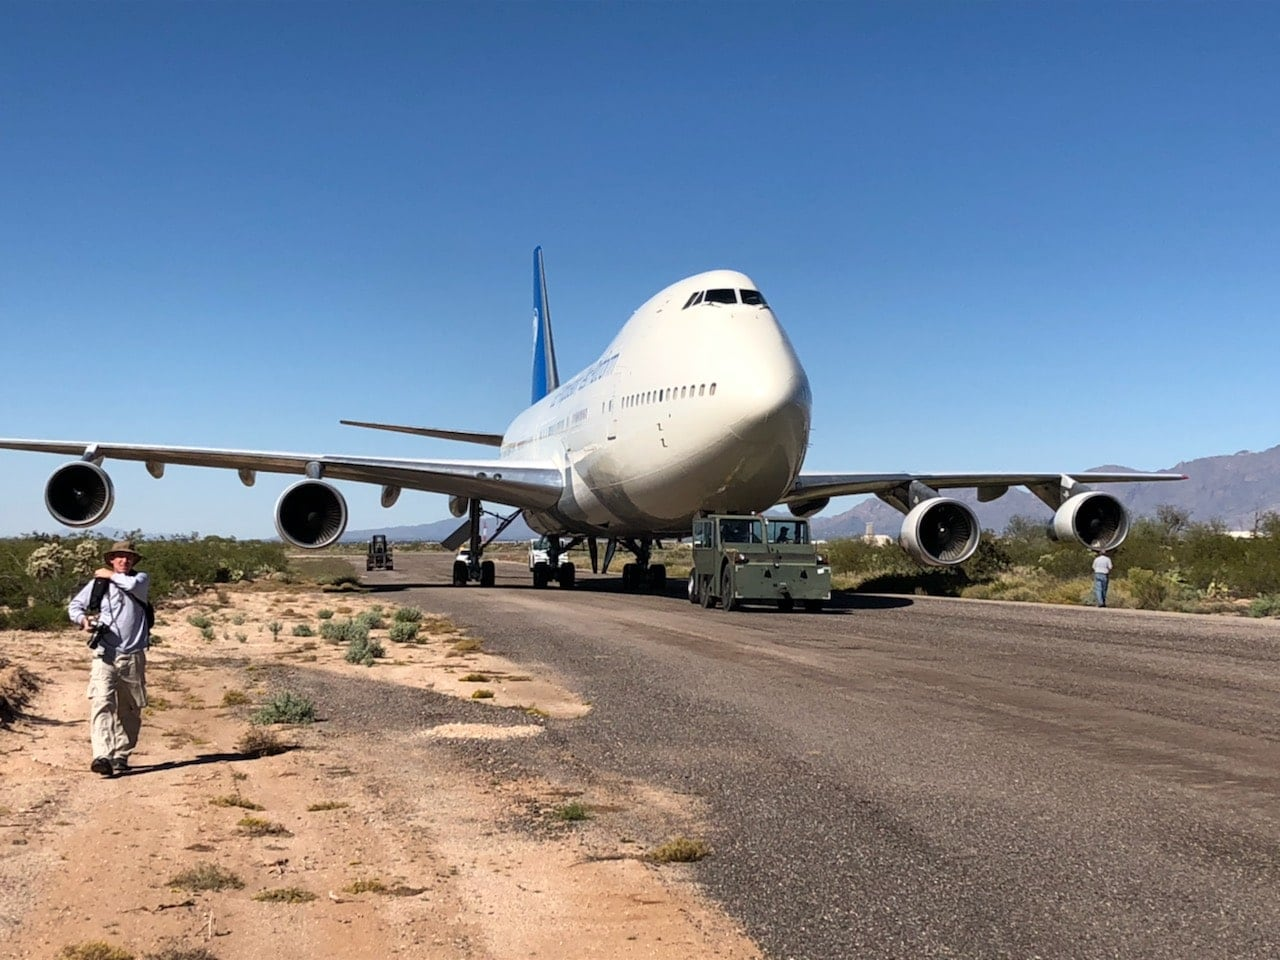 GE's Original 'Classic' 747 Testbed Takes One Last Flight To